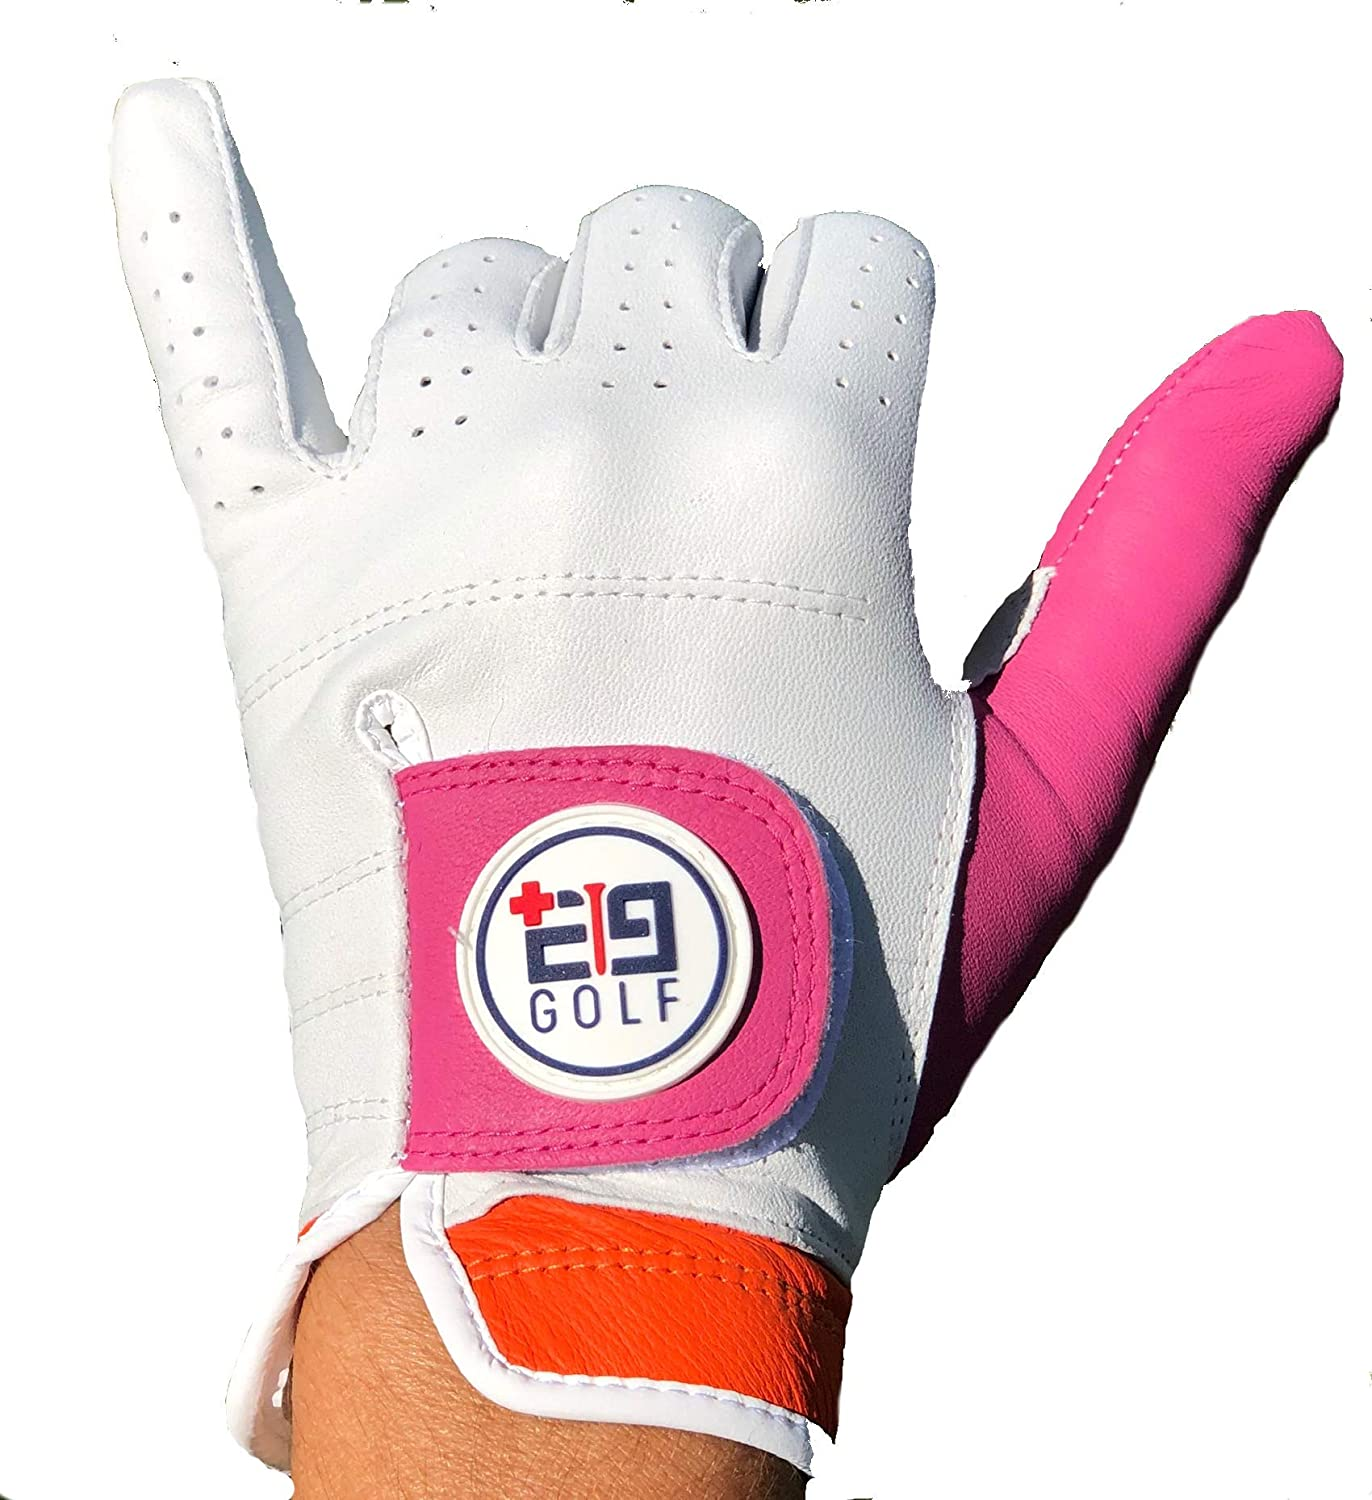 E9golf Tour Performance Leather Golf Glove– Premium Gloves for Women - Ultra Soft Leather – Perfect Design for A More Stylish Game – Breathable and Comfortable